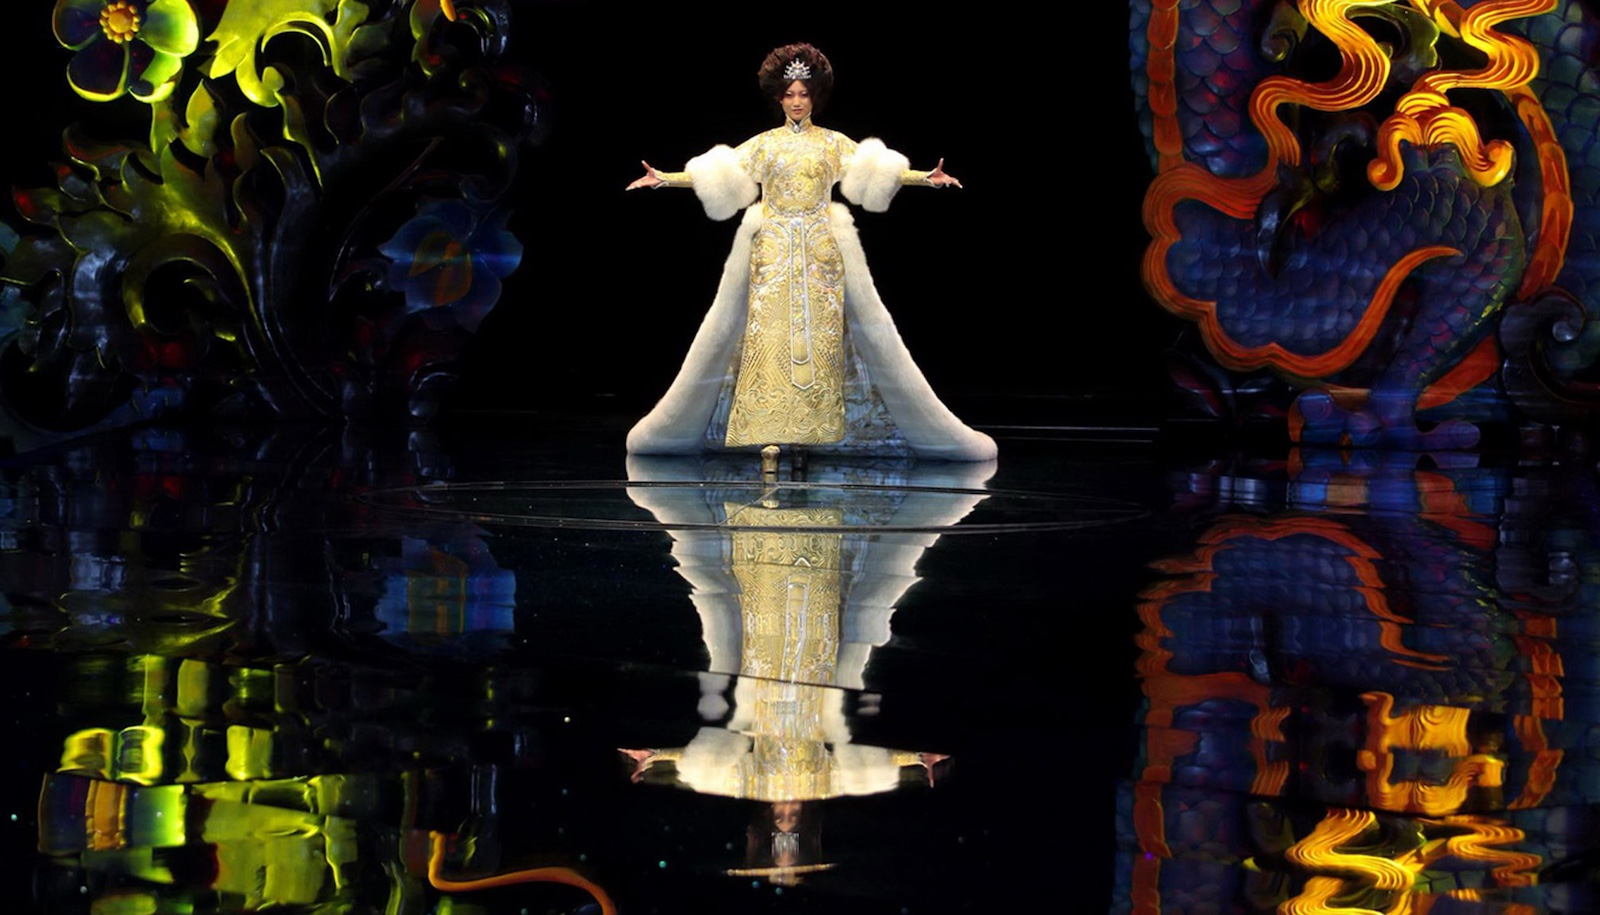 A model showcases designs on the runway during the Guo Pei 2013 Dragon Bride show in Beijing, China (Photo: VCG/Getty)